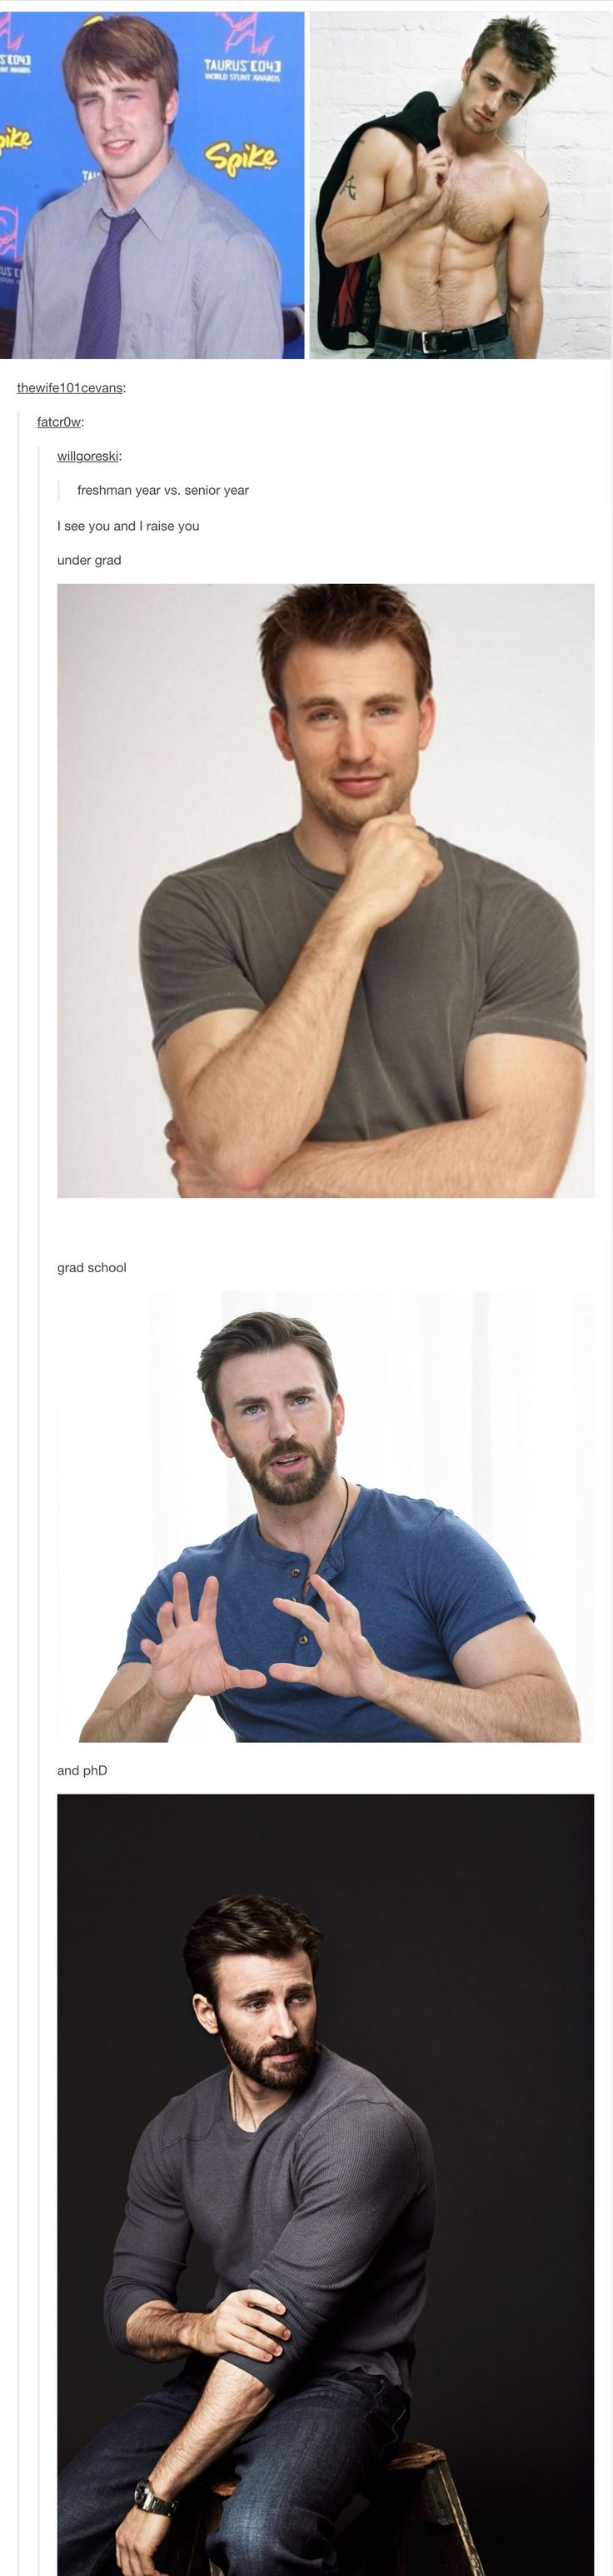 Bless this post #chrisevans